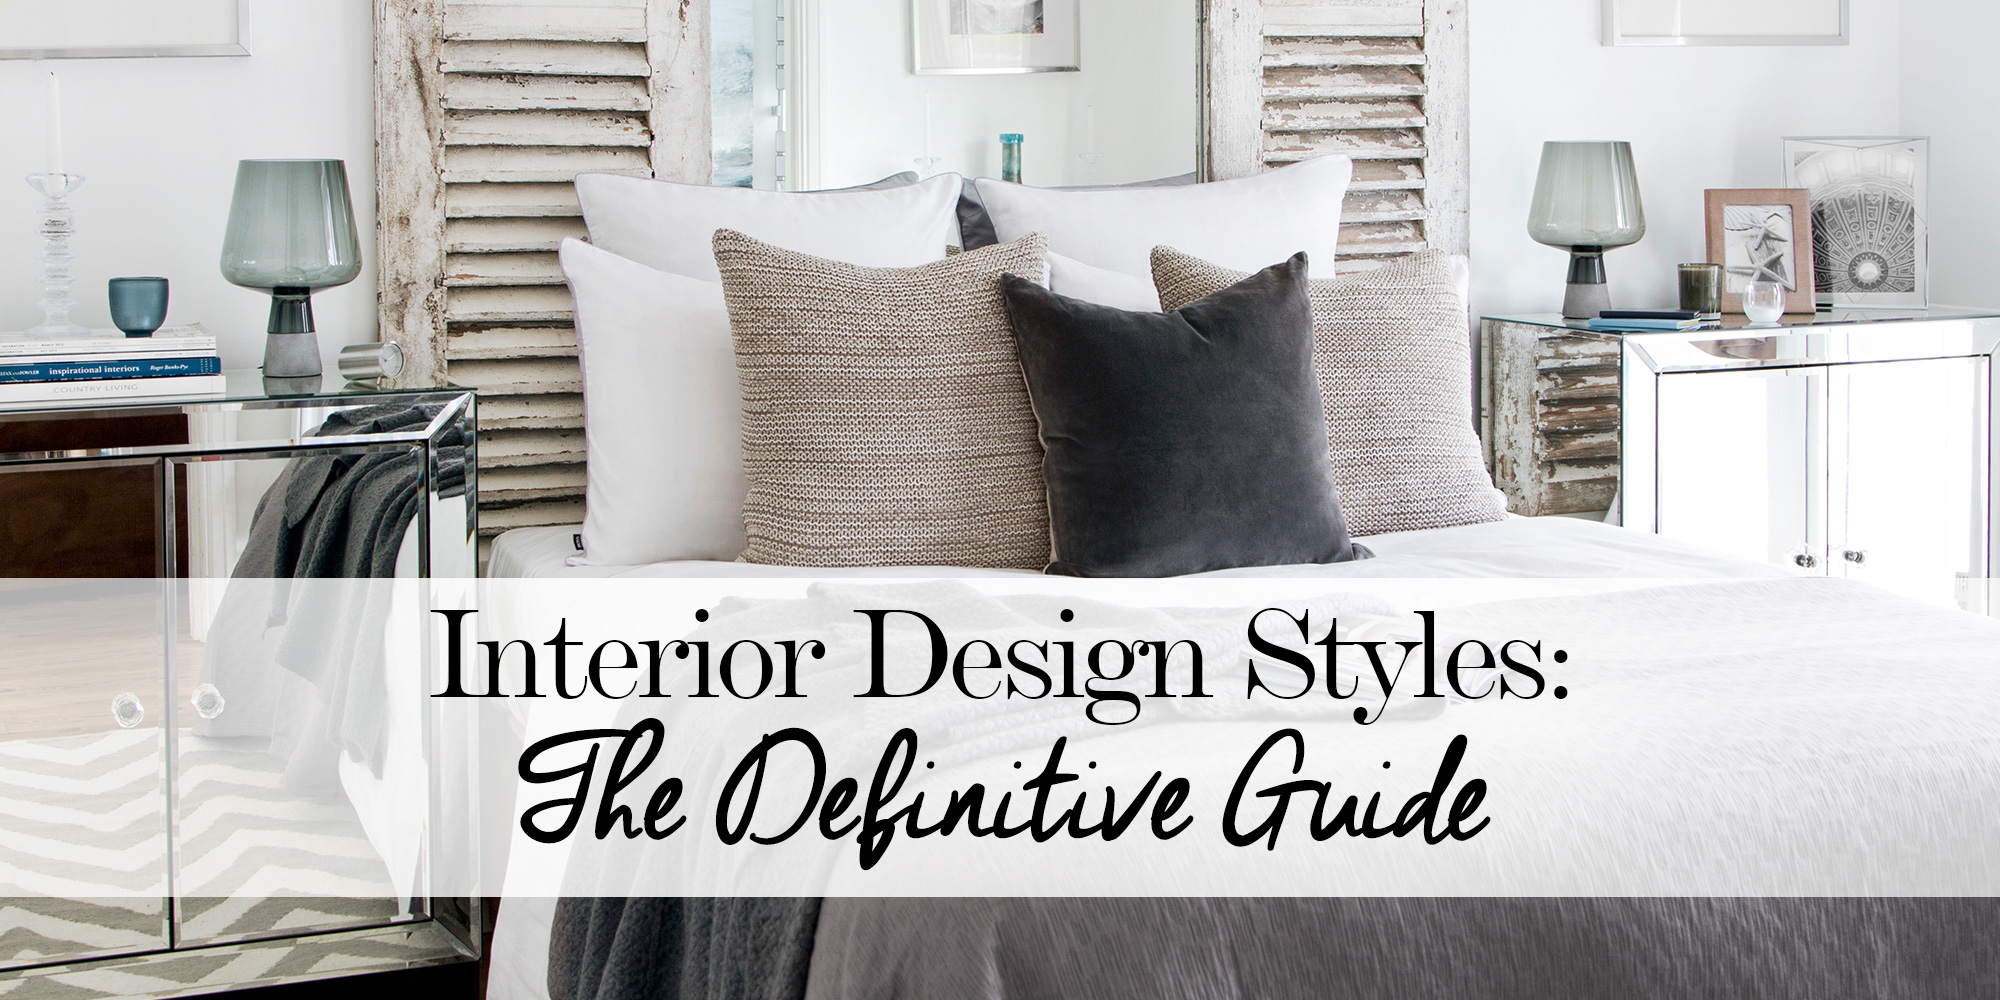 Interior design styles the definitive guide the luxpad for Interior design styles types pdf